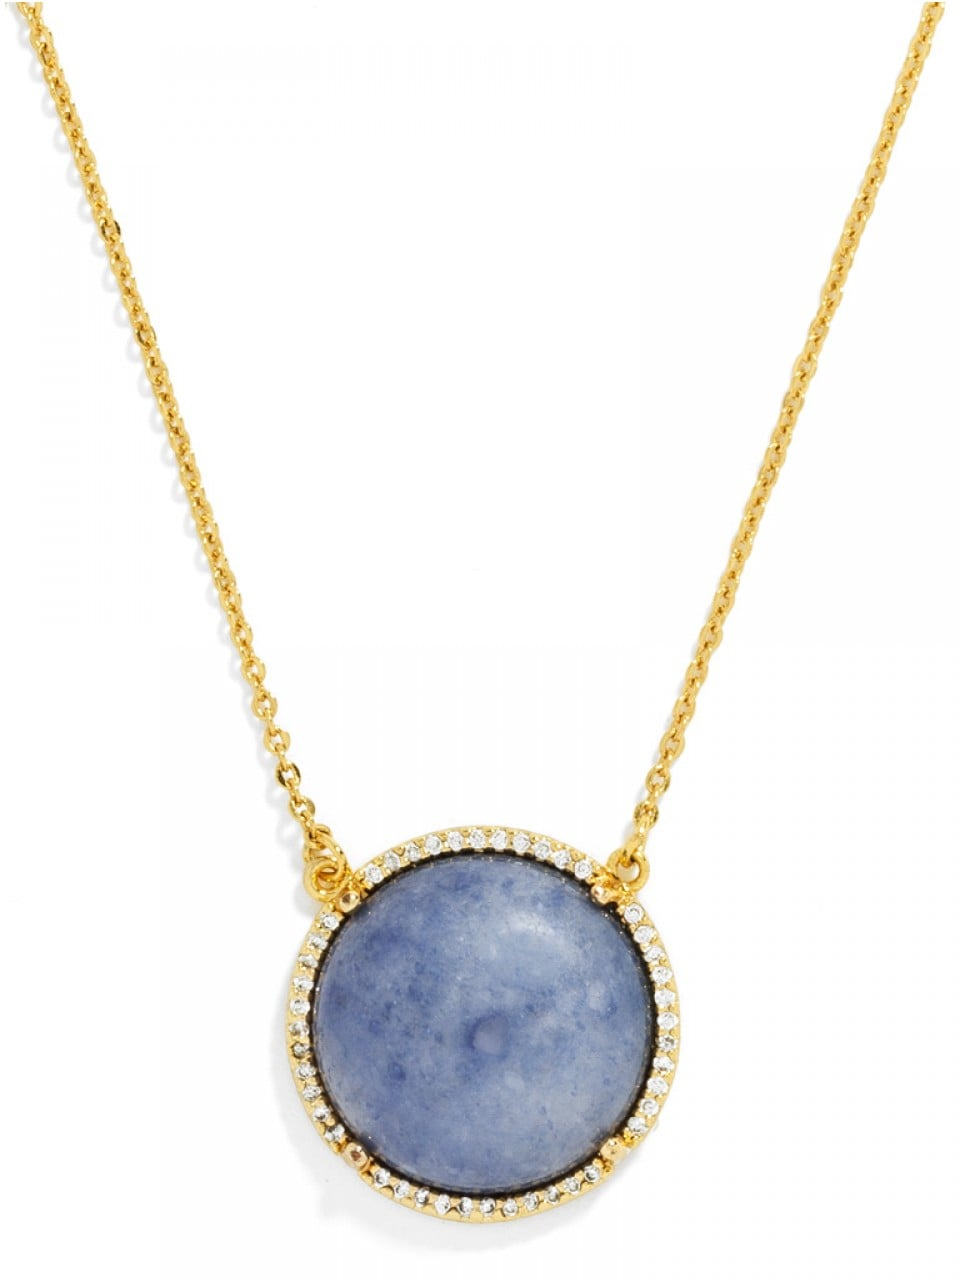 Photo from baublebar.com